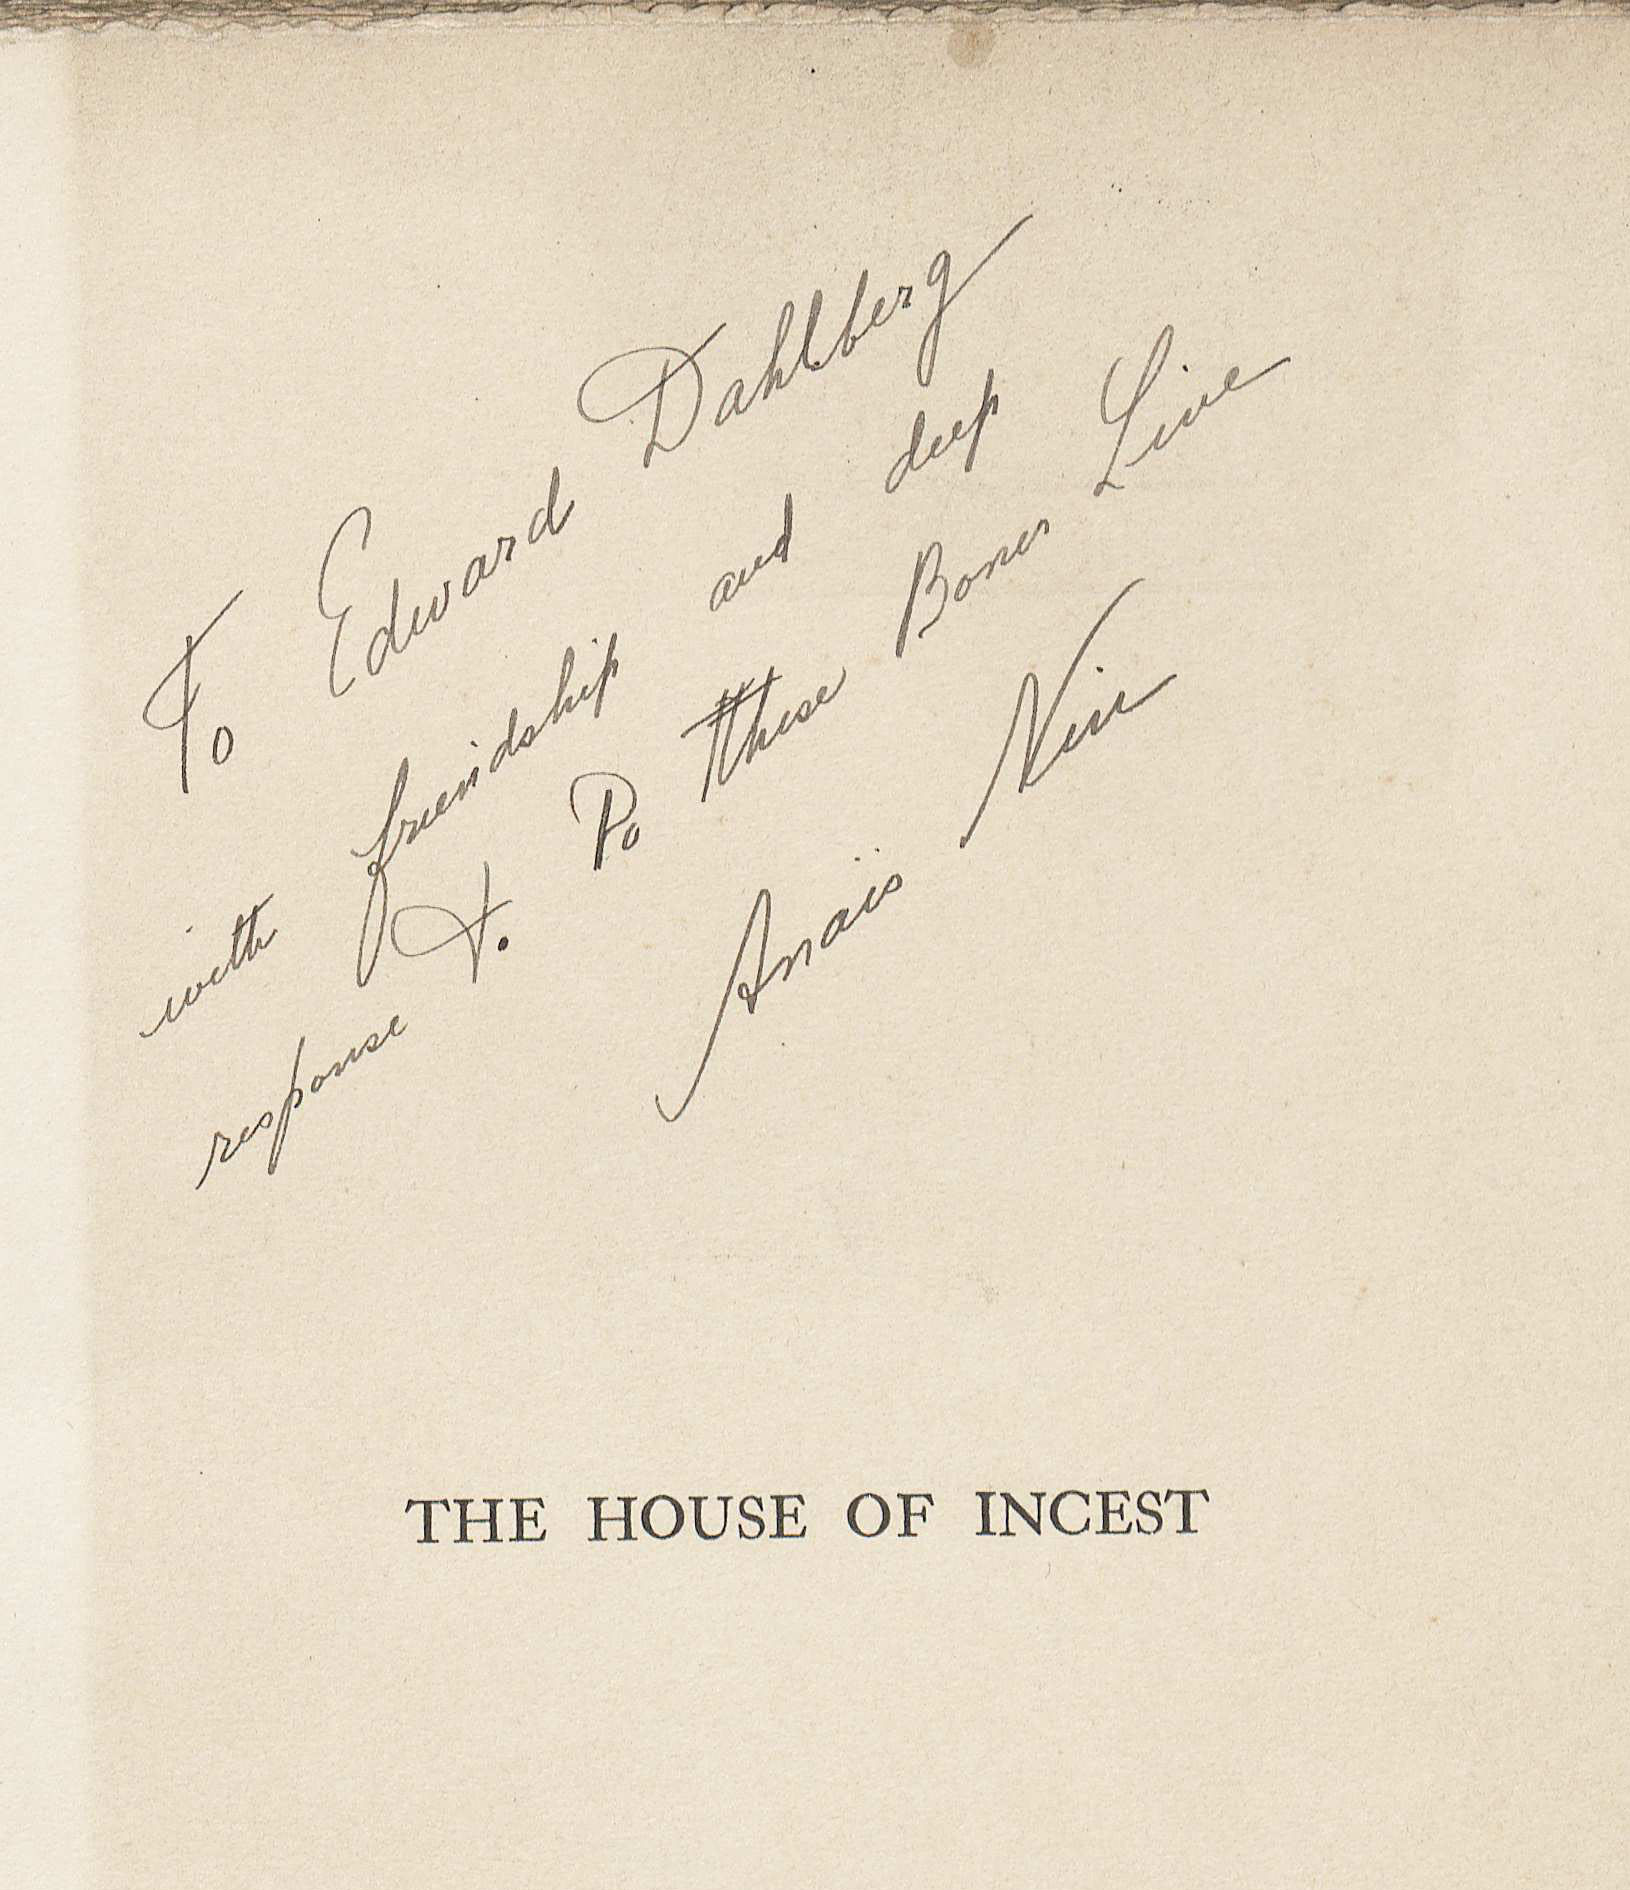 Anais Nin's incription to Edward in her book The House of Incest. (PS3527 .I865H6 1936. Image by Anne Causey)